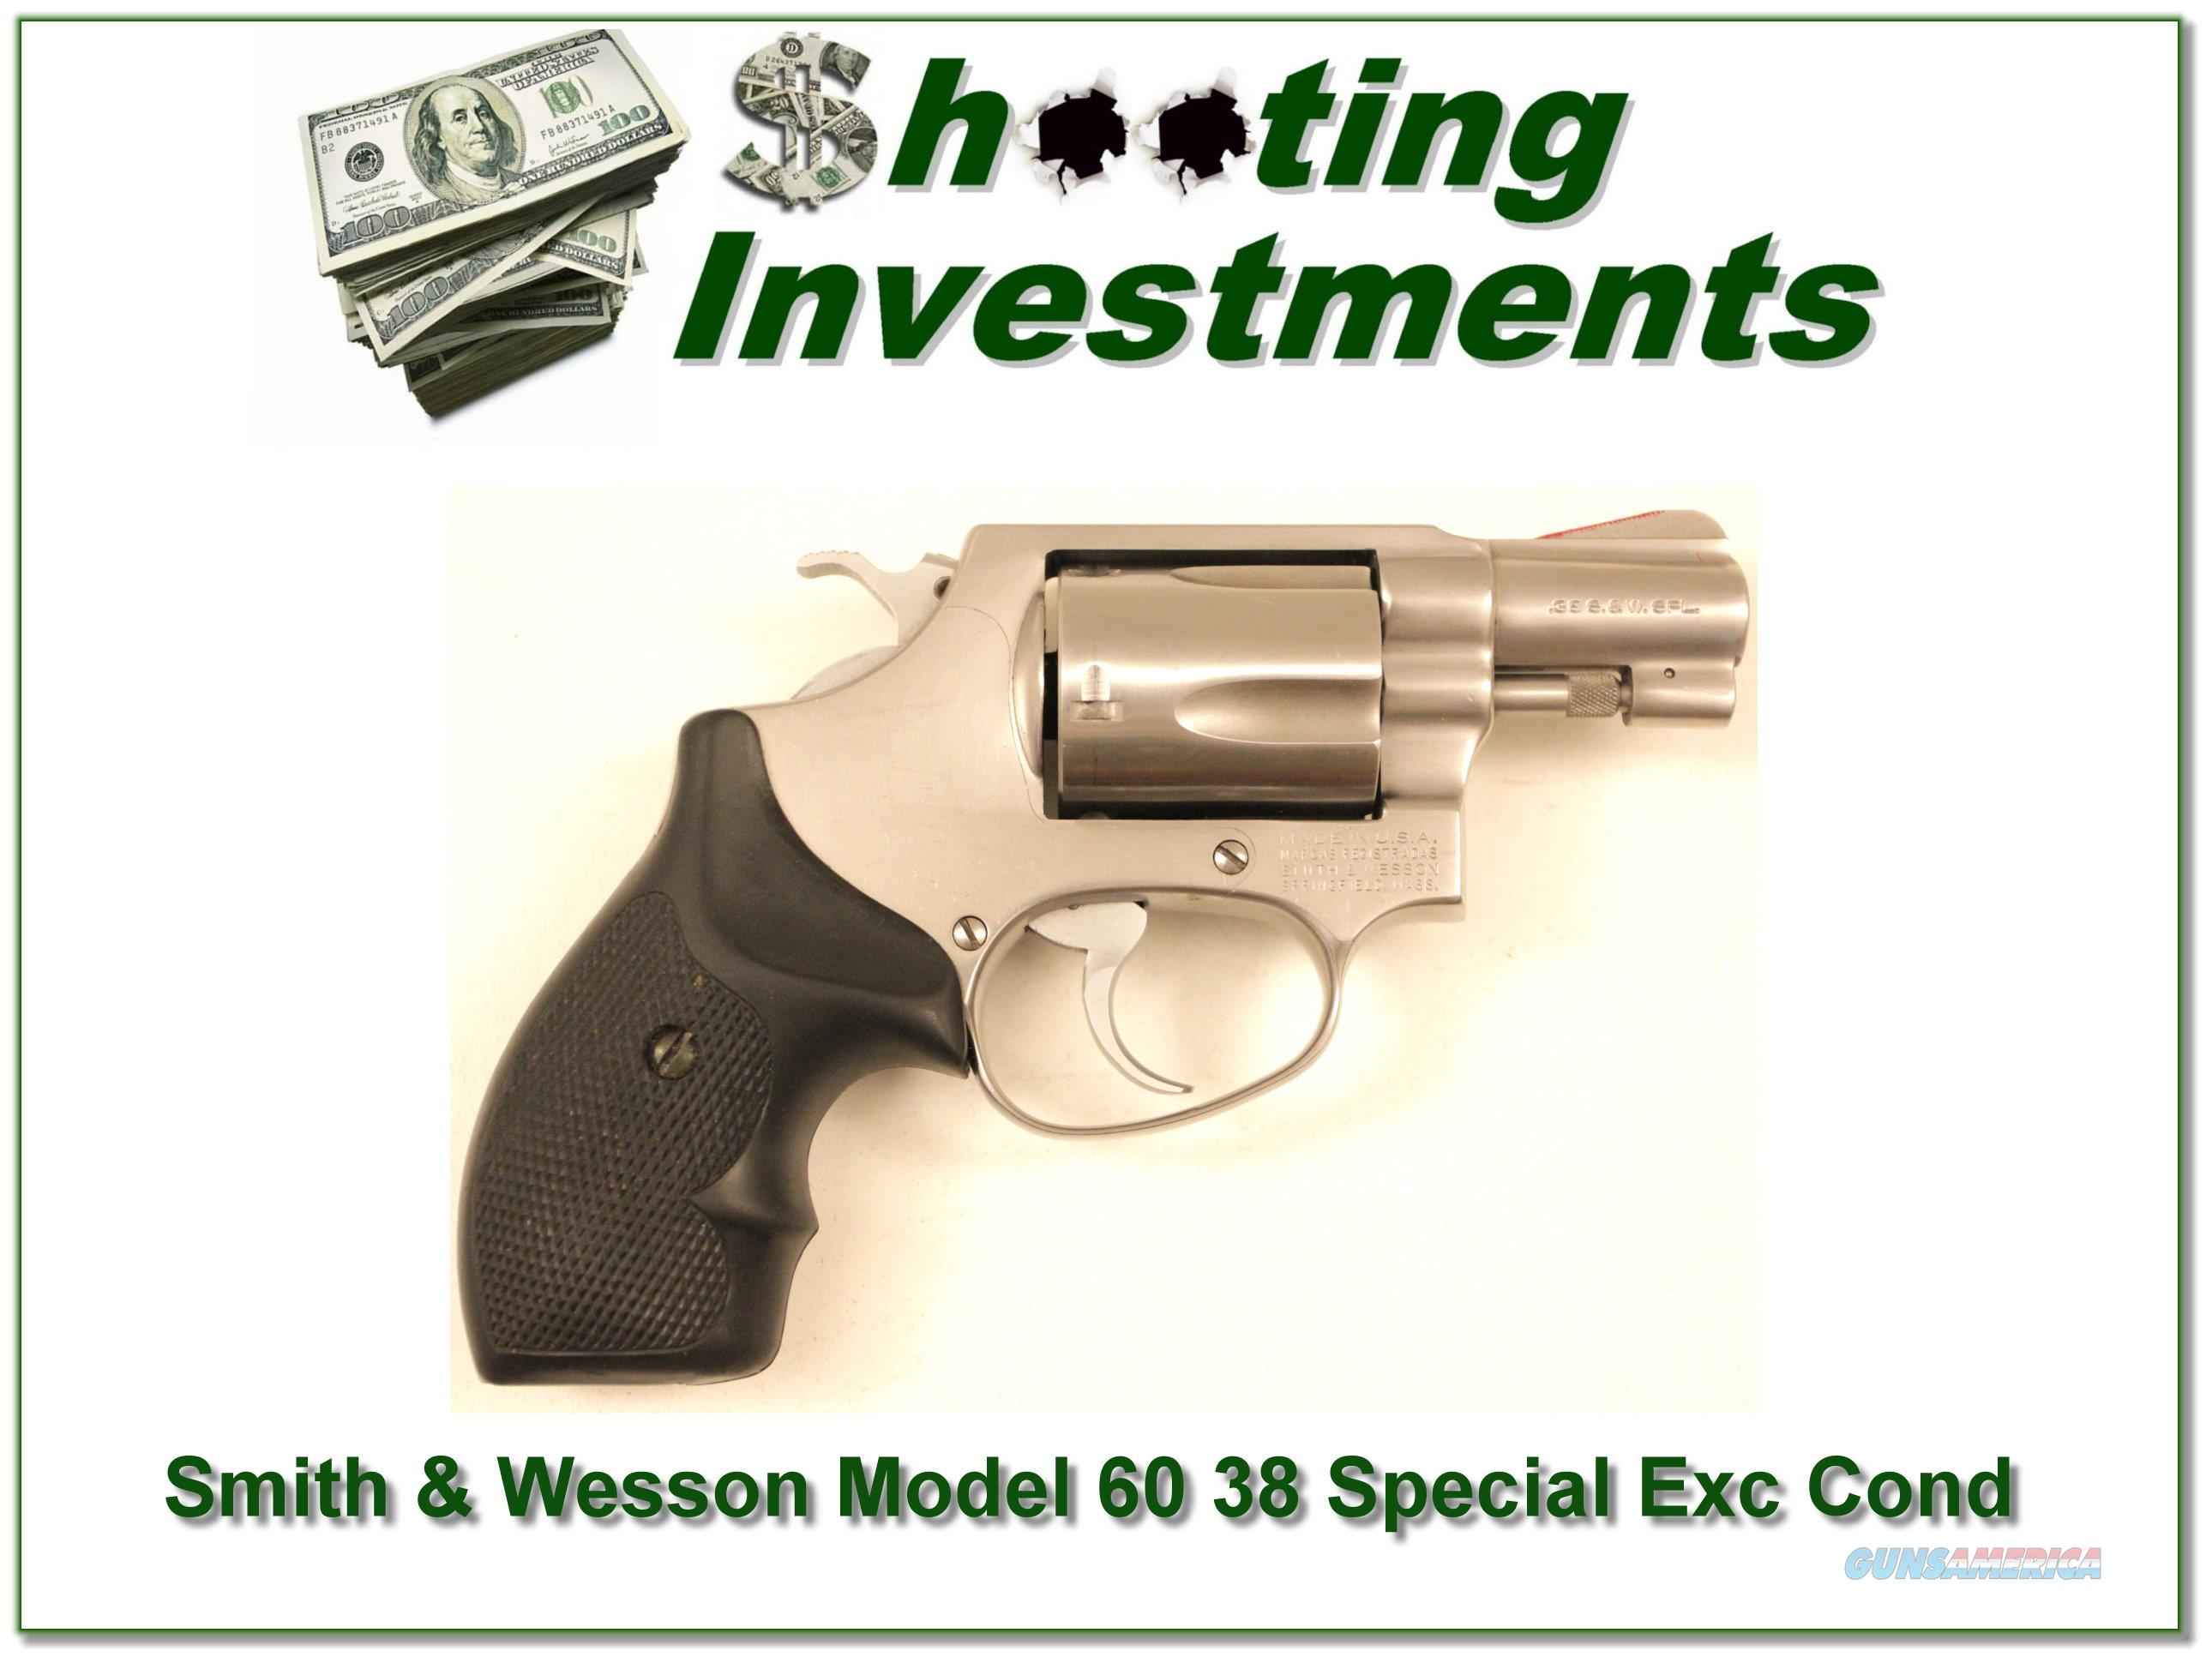 Smith & Wesson Model 60 (no Dash) 38 Special 2in Stainless  Guns > Pistols > Smith & Wesson Revolvers > Pocket Pistols